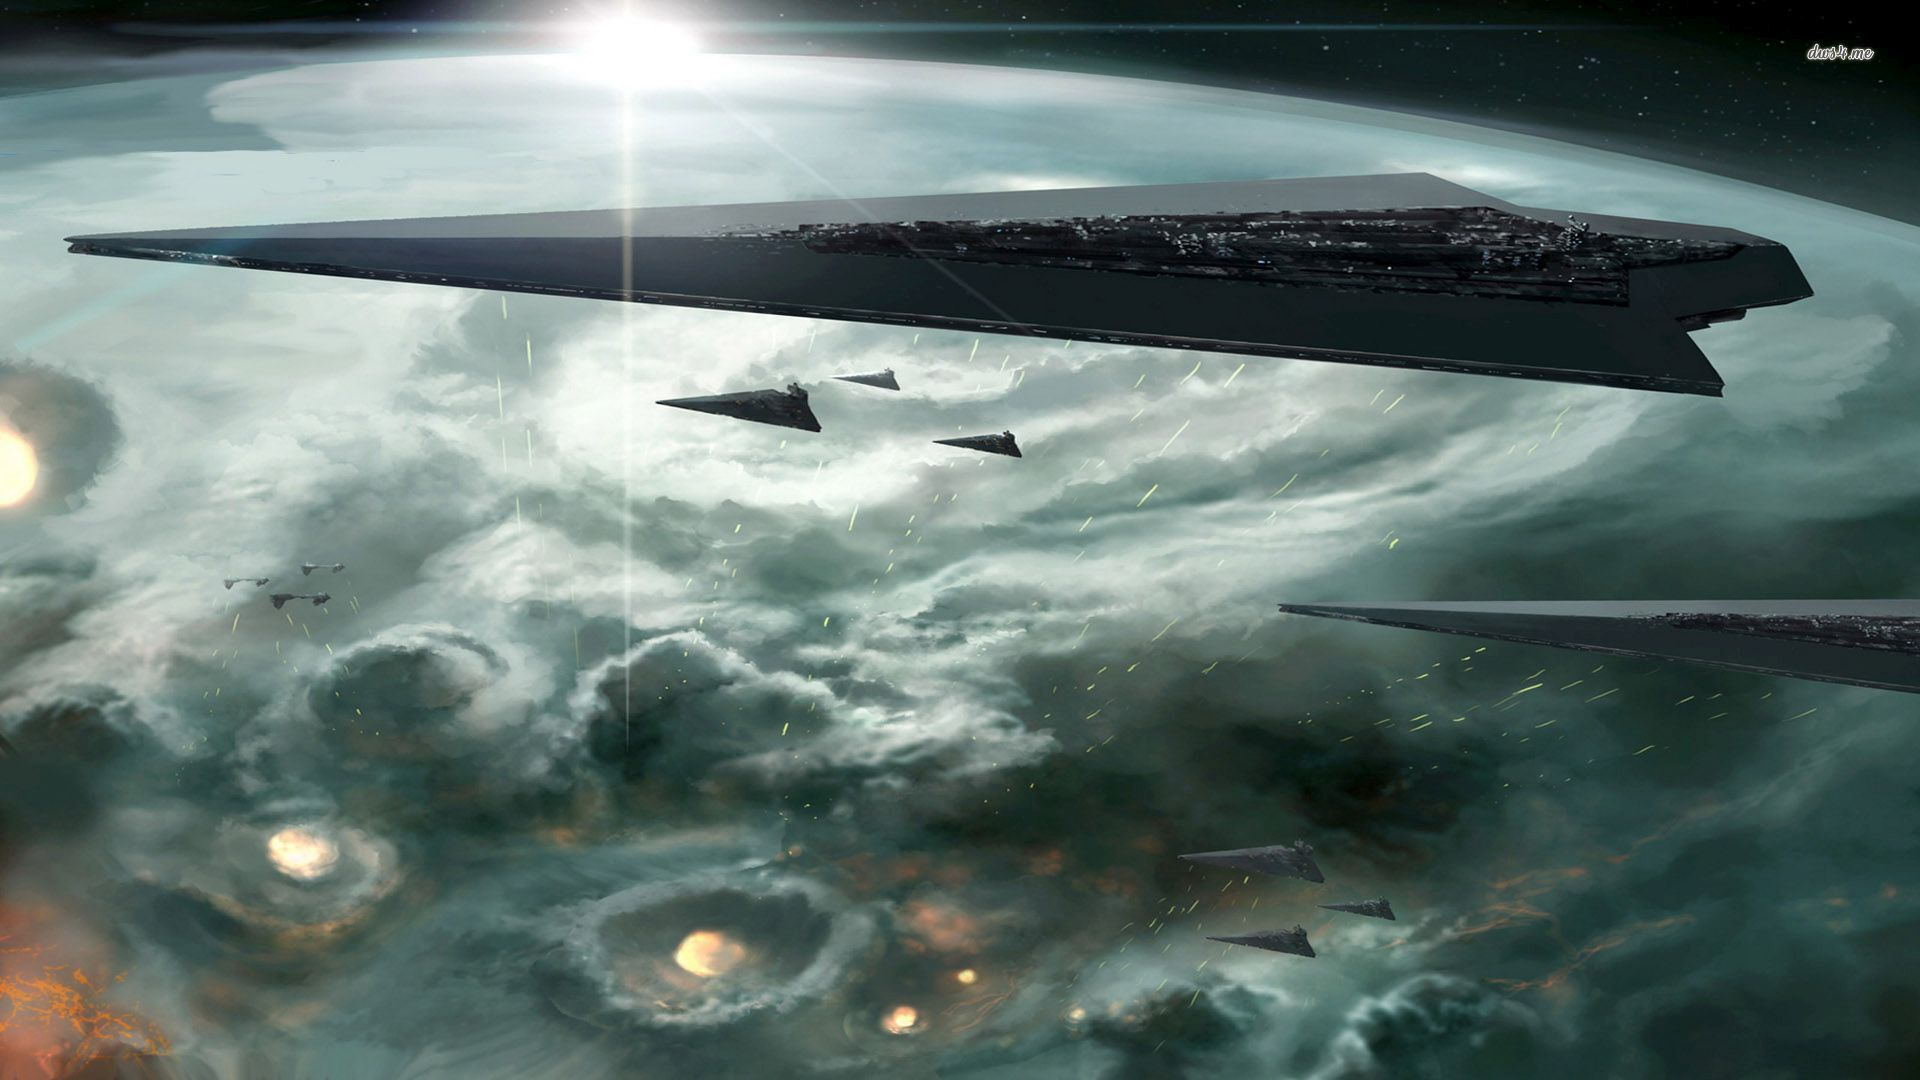 Star Wars Imperial Star Destroyer Star Wars Wallpaper Star Wars Ships Star Wars Illustration